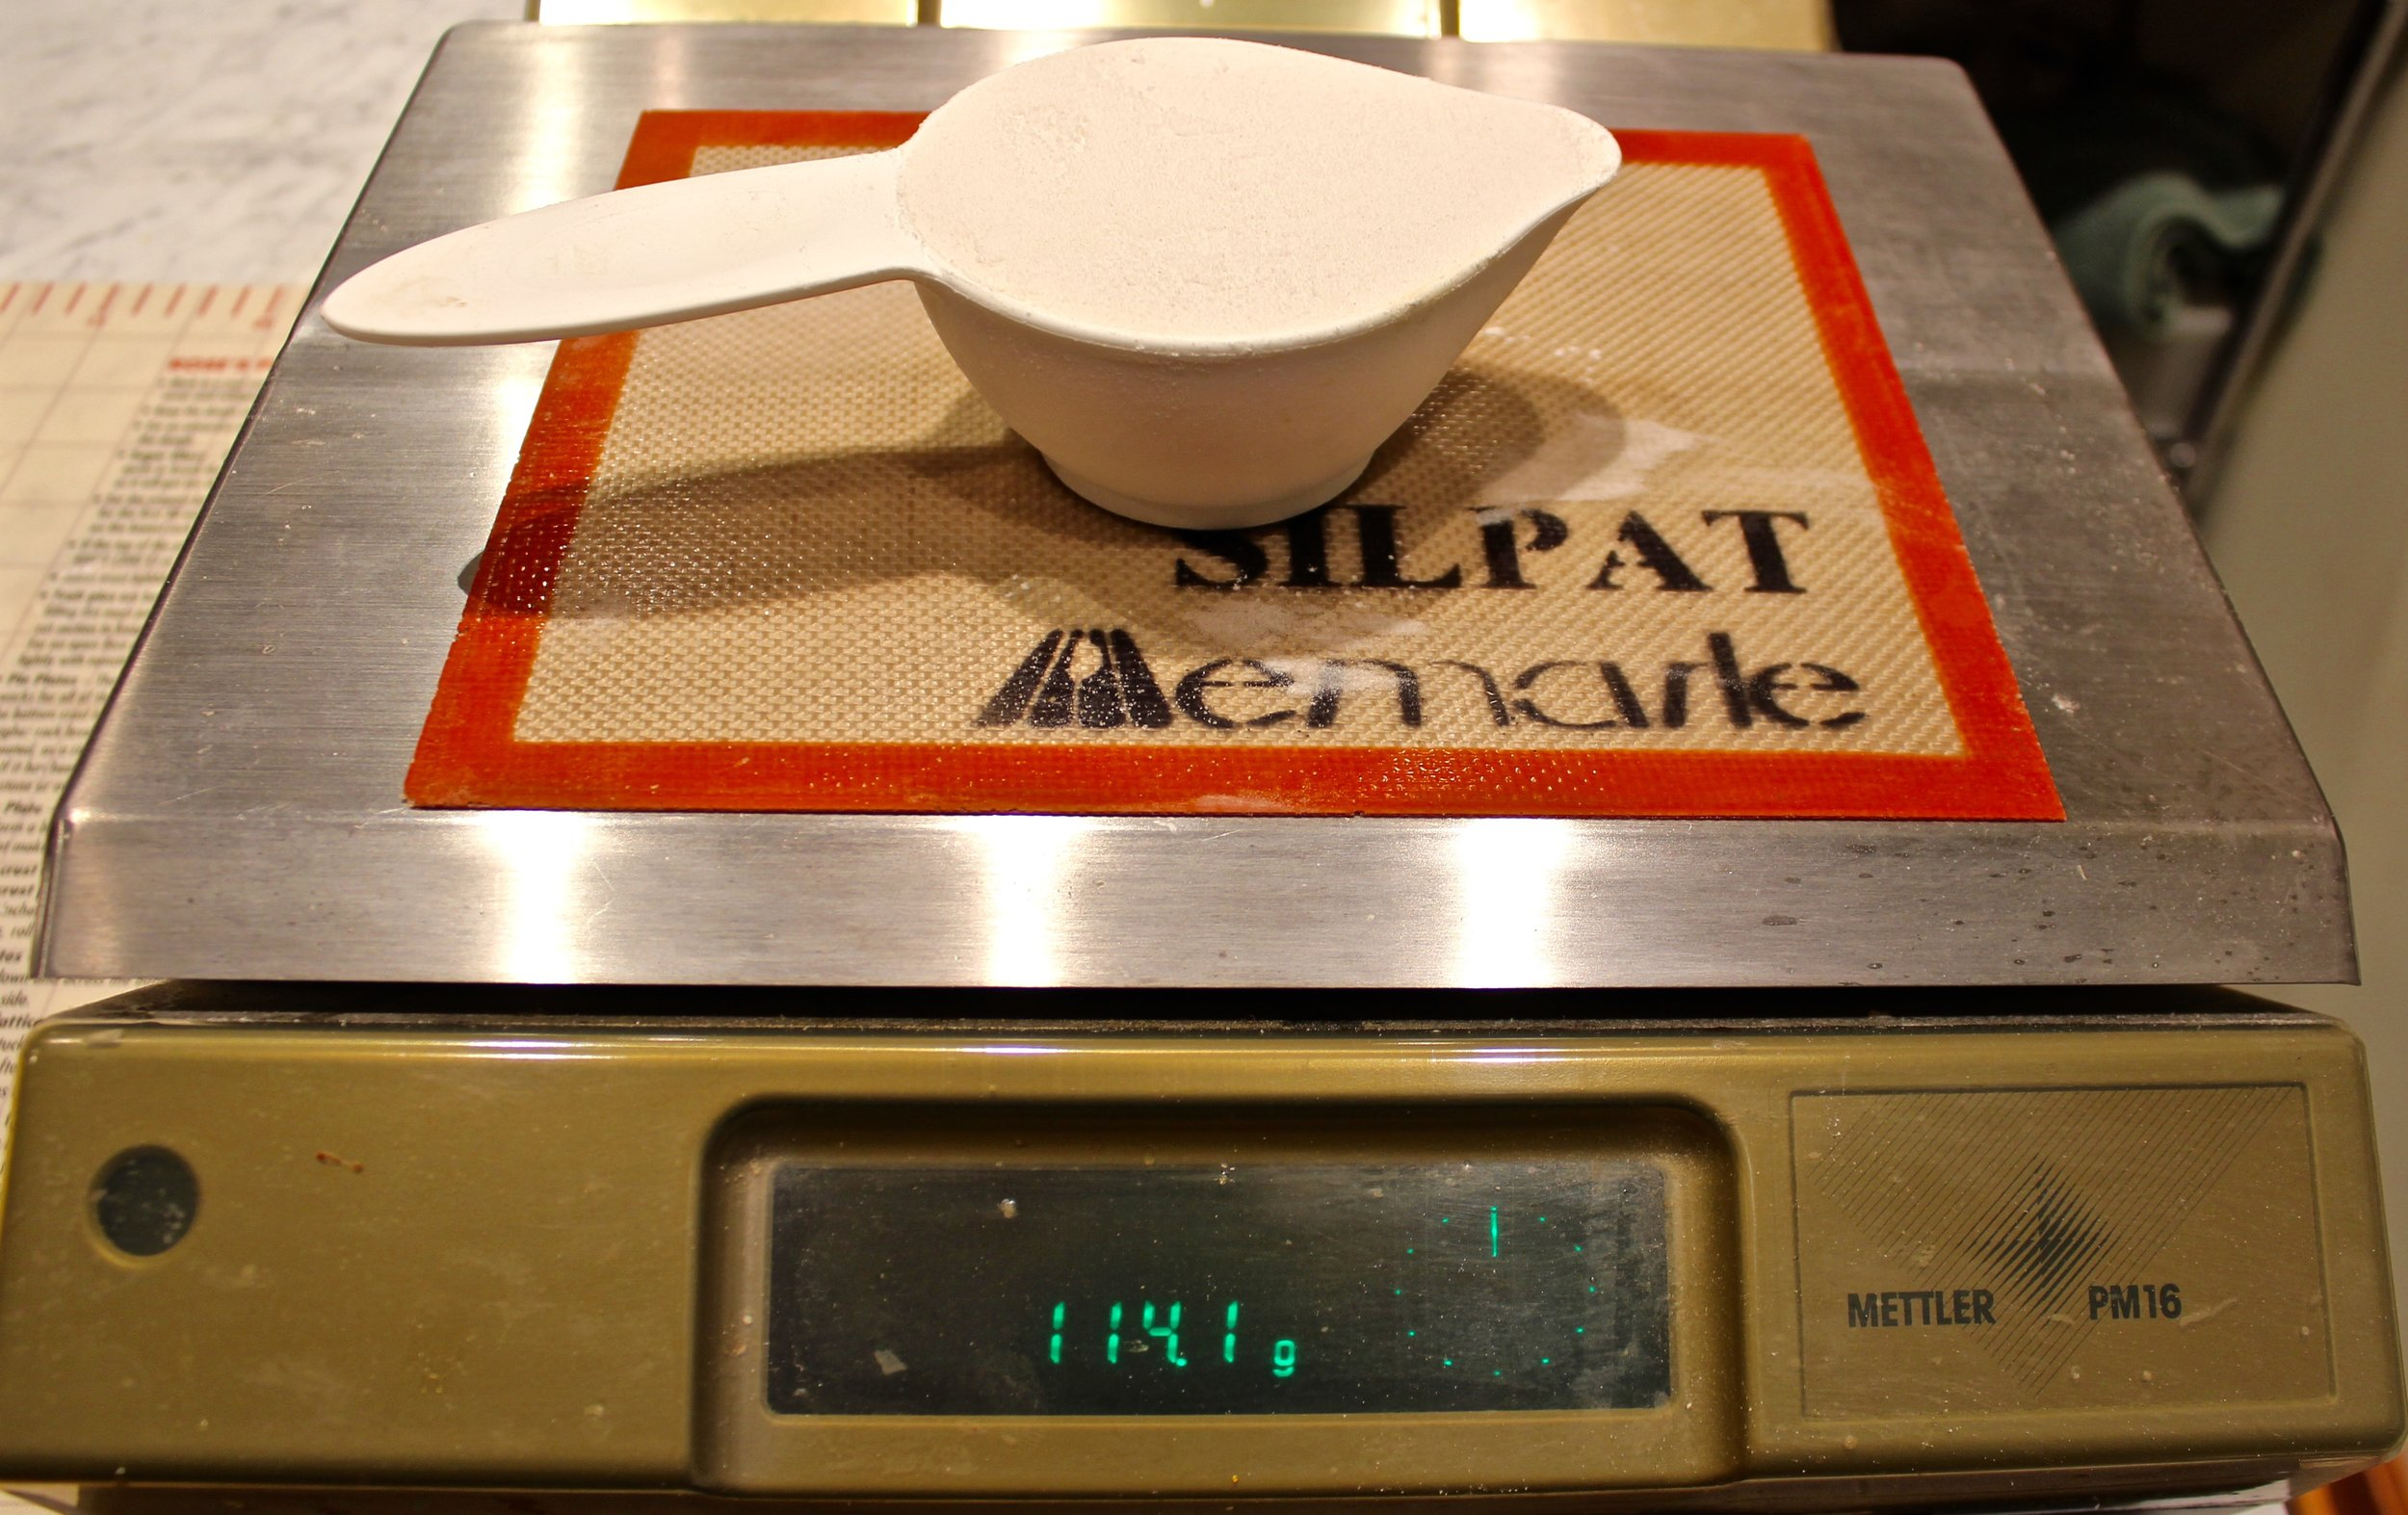 7. 114 grams for sifted